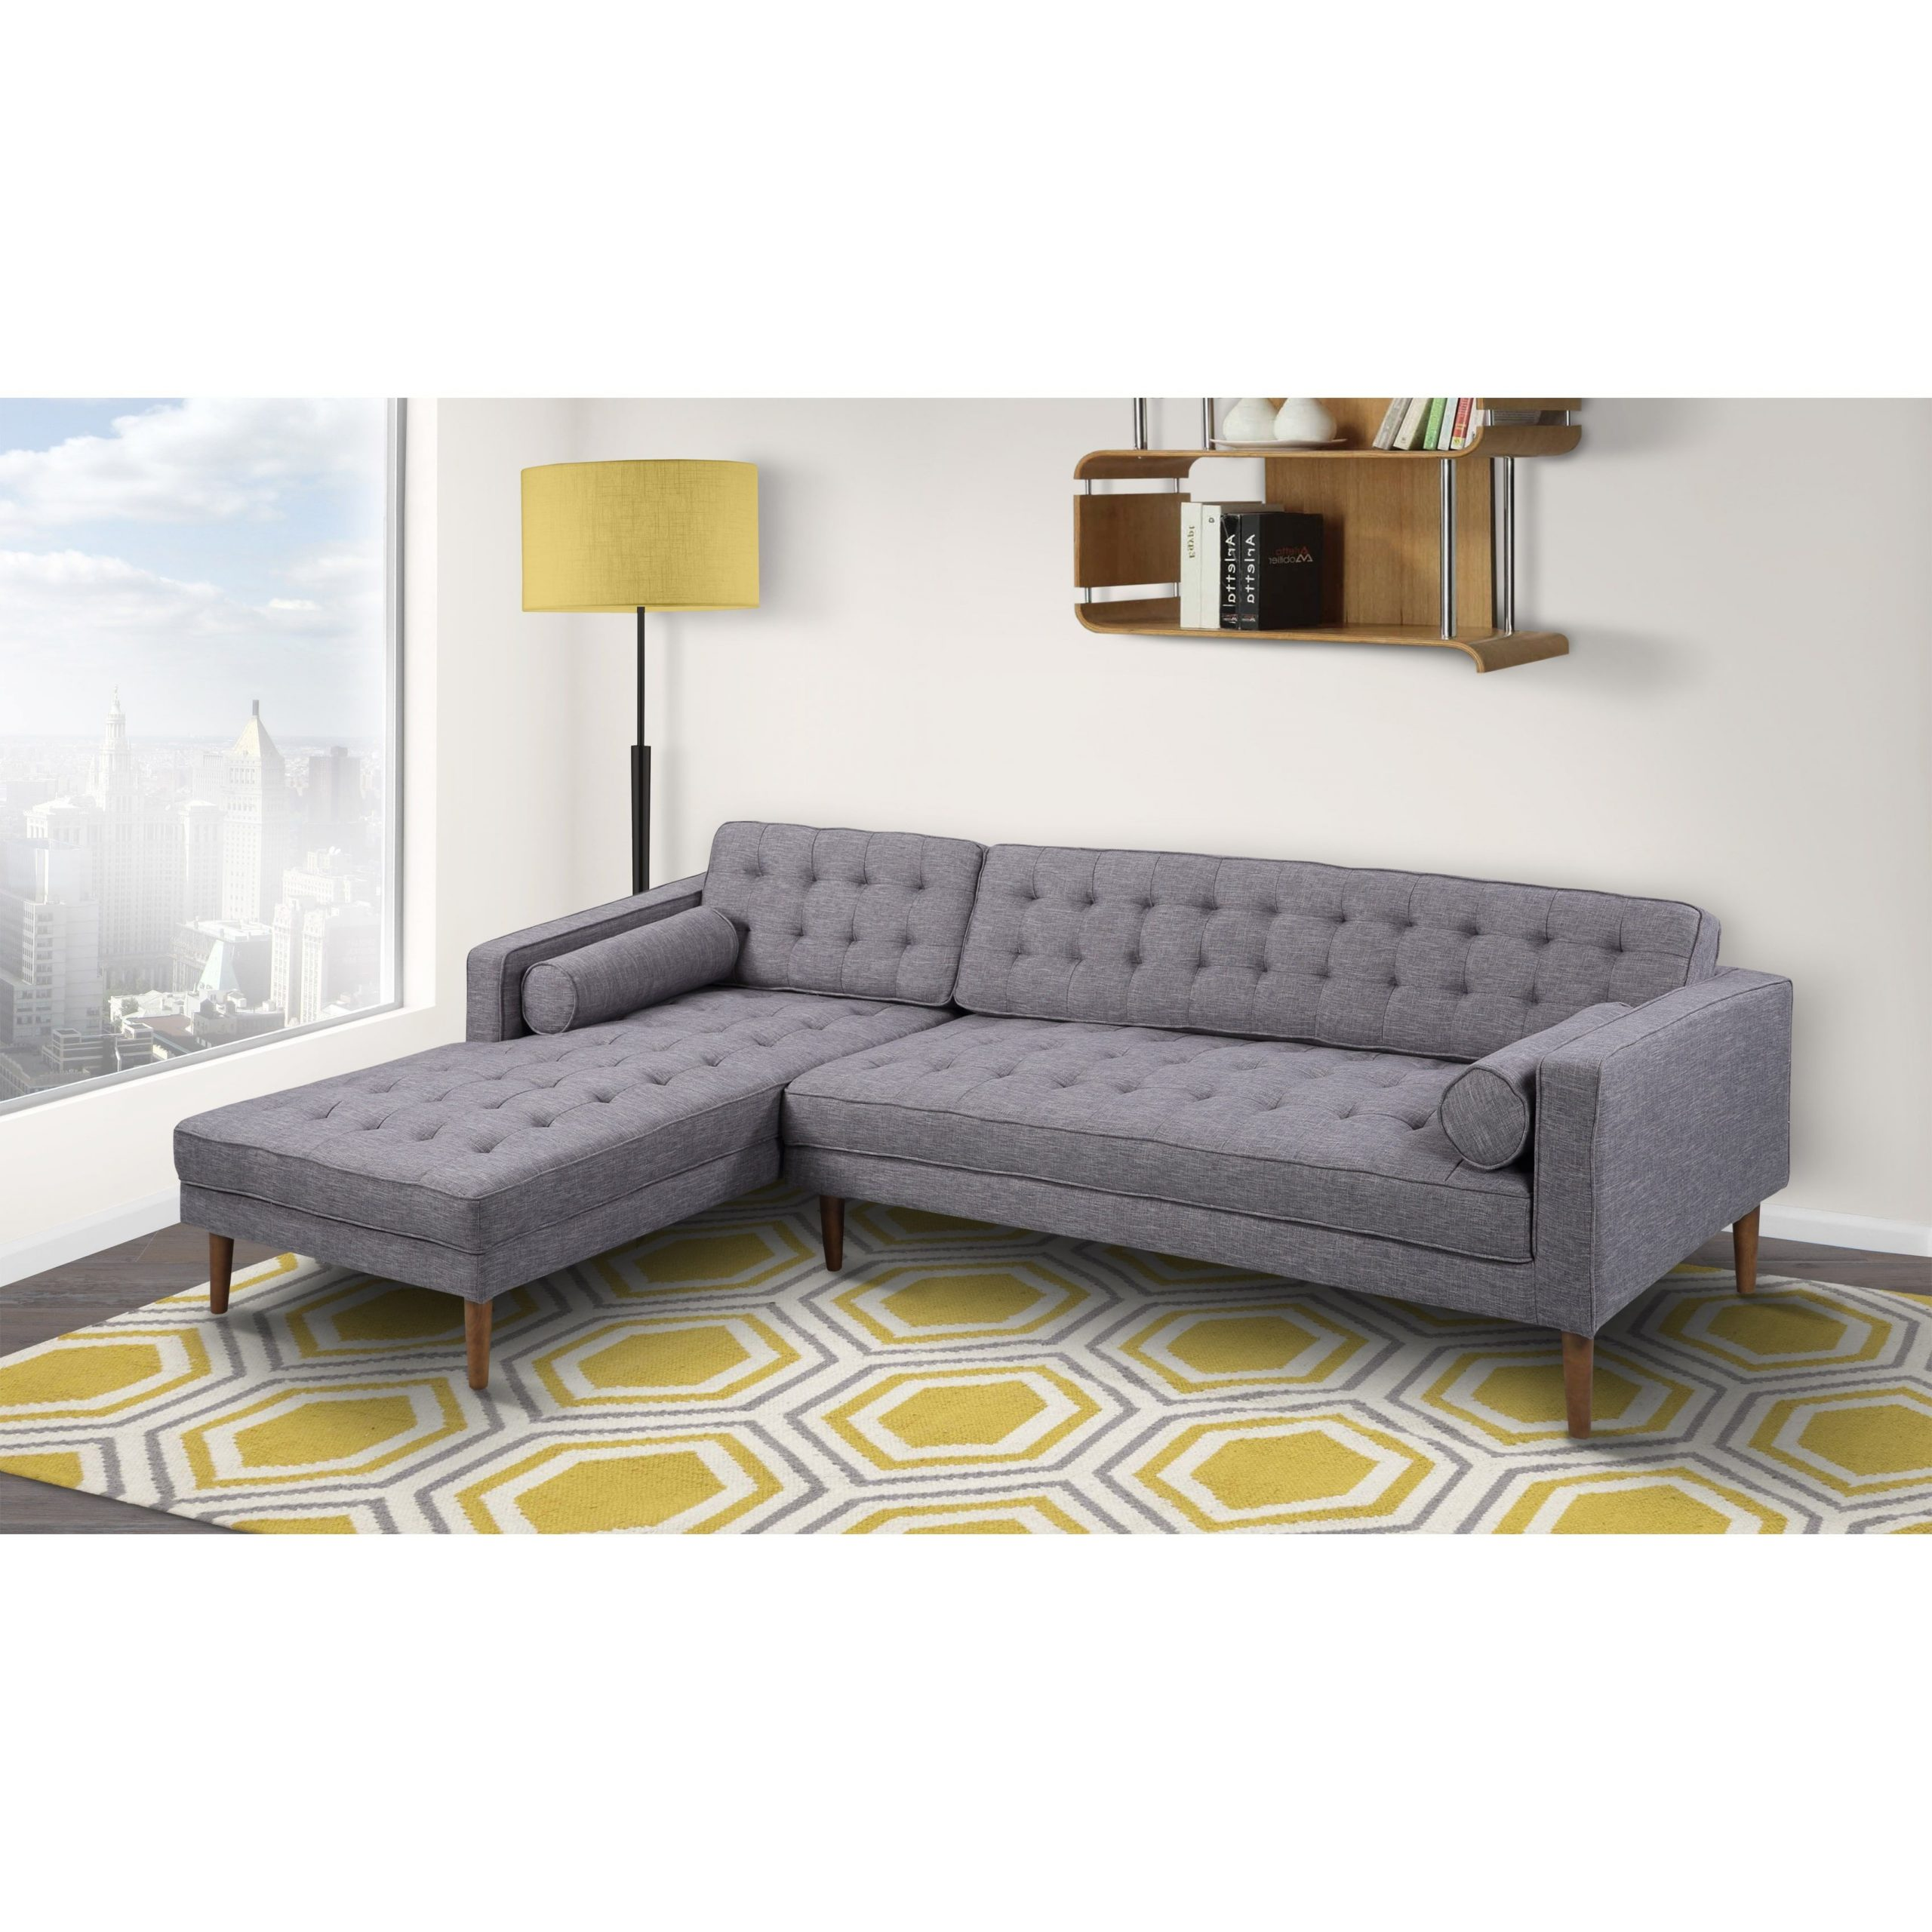 Element Right Side Chaise Sectional Sofas In Dark Gray Linen And Walnut Legs In 2018 Armen Living Element Tufted Dark Grey Linen Sectional Sofa (View 7 of 20)